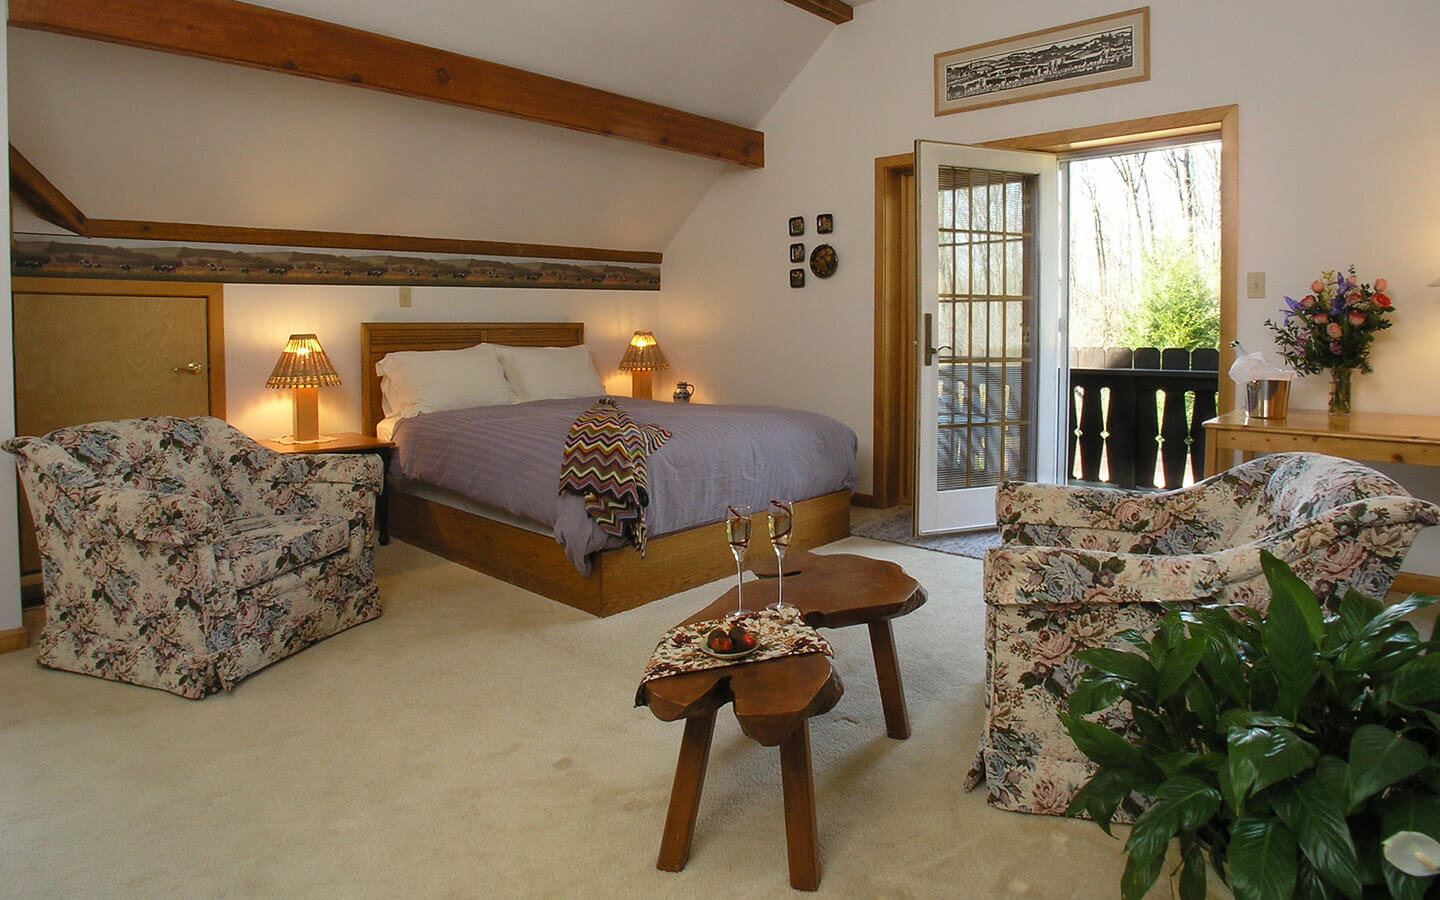 Appenzell Room with bed and chairs at our Lancaster, PA B&B